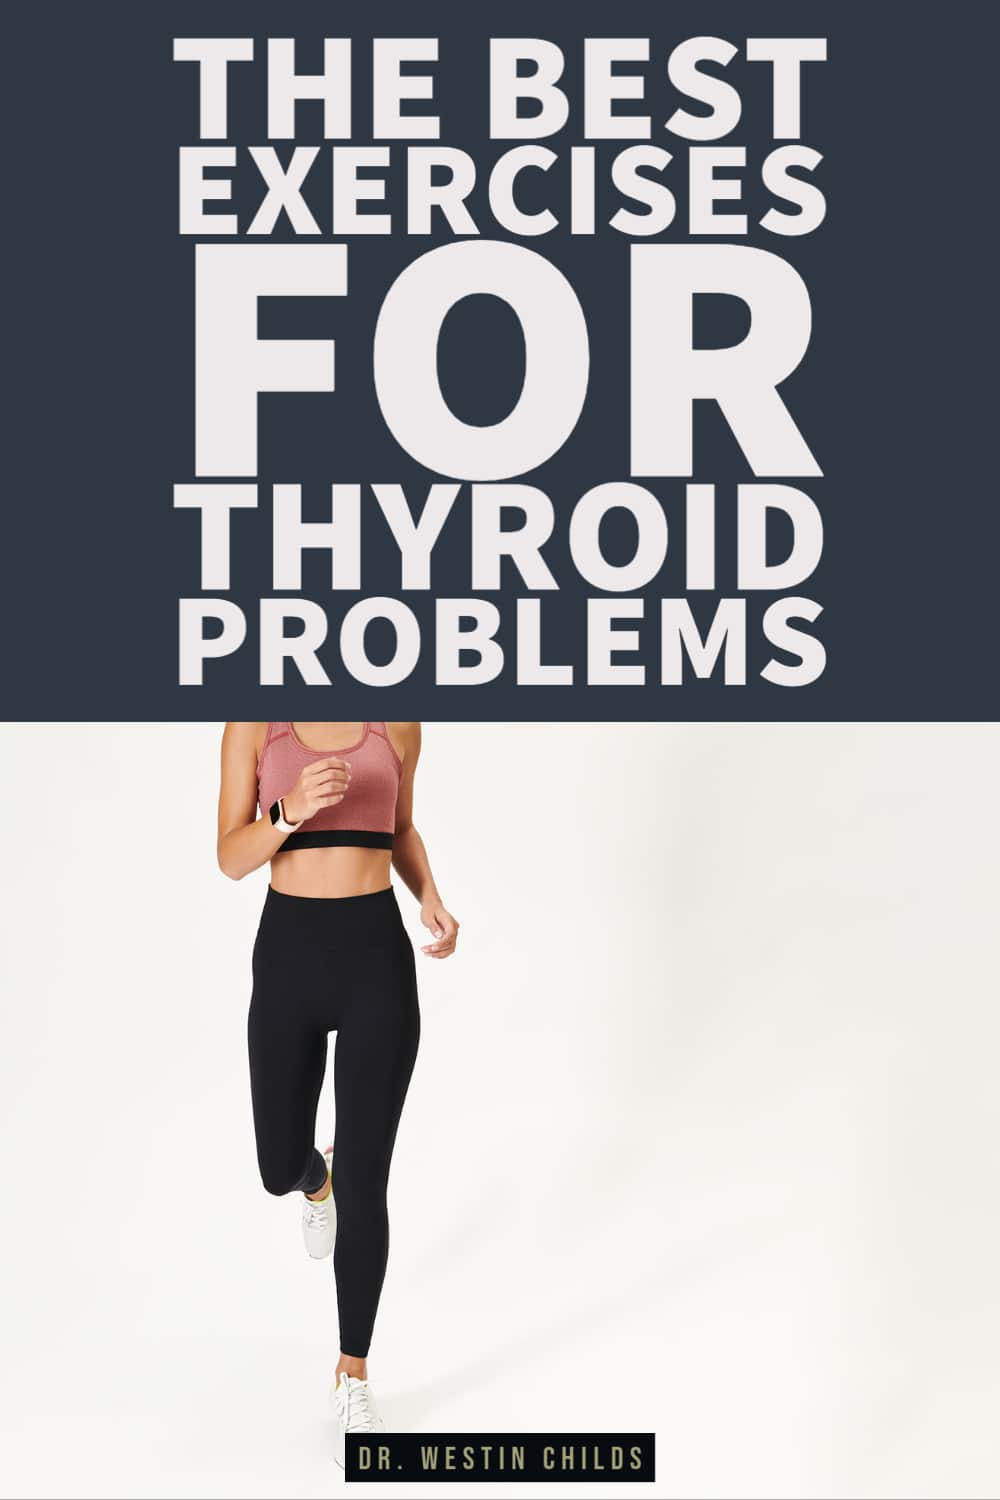 the best exercises for thyroid problems